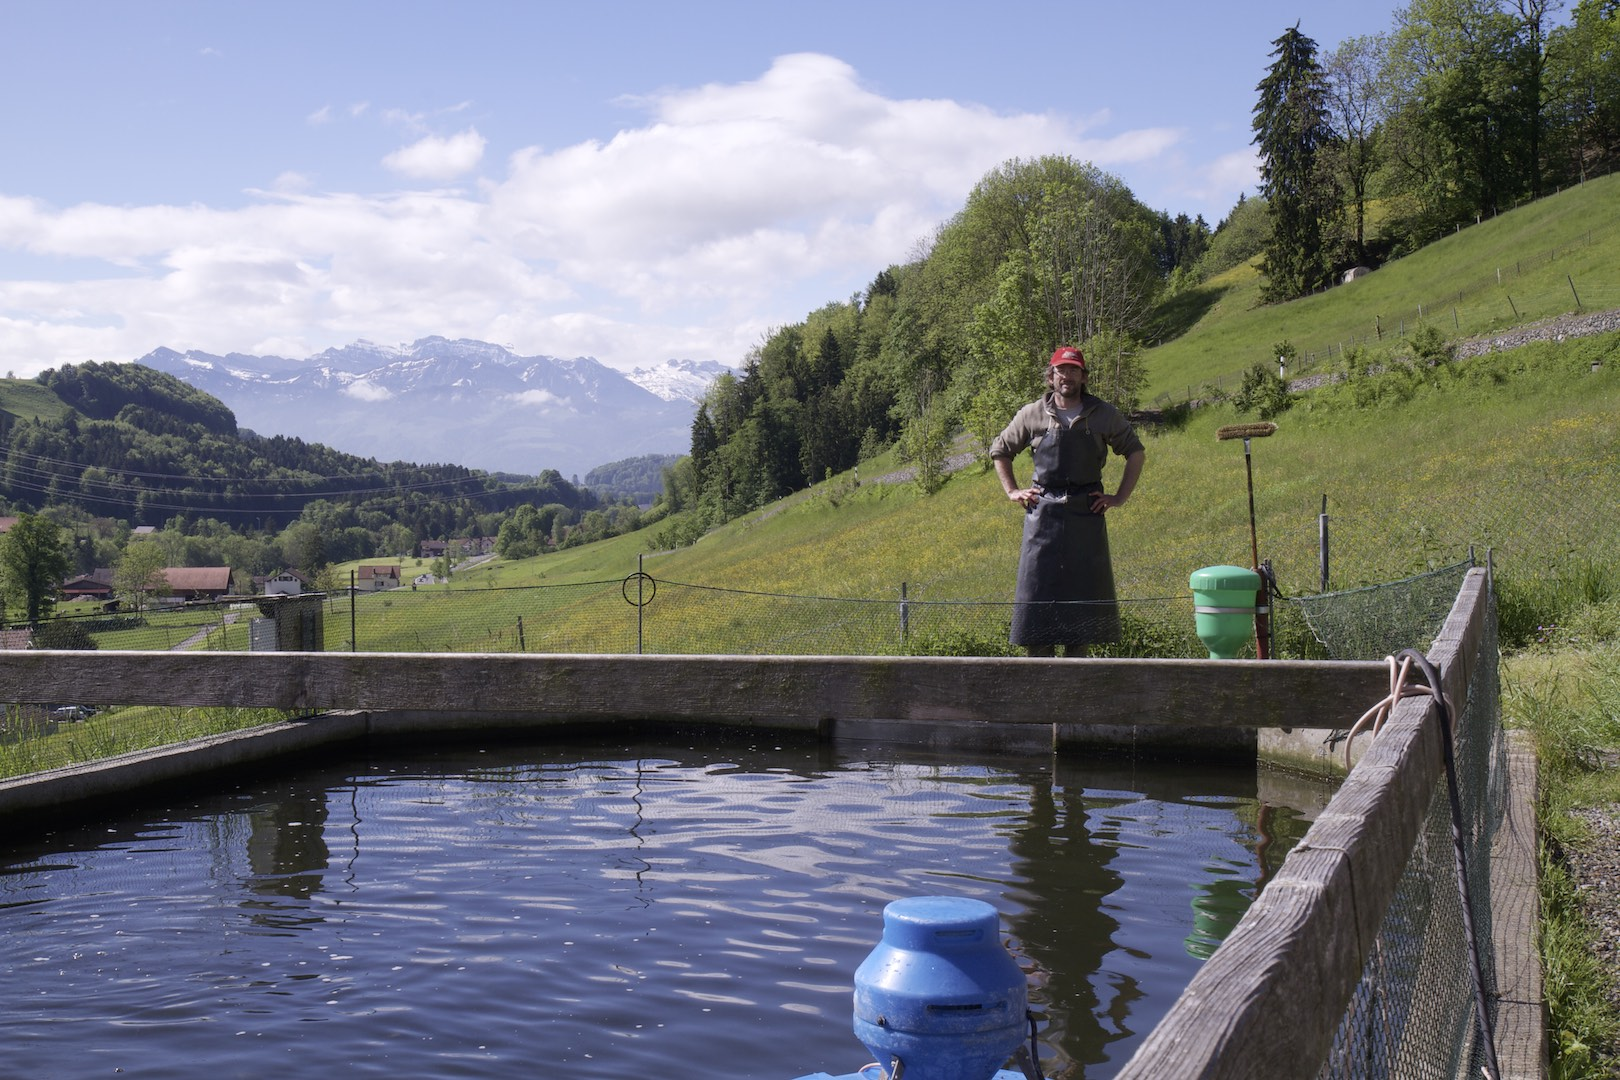 The man and his fish: Bachtellachs entrepreneur Yves C. Sacher in Zürich Oberland